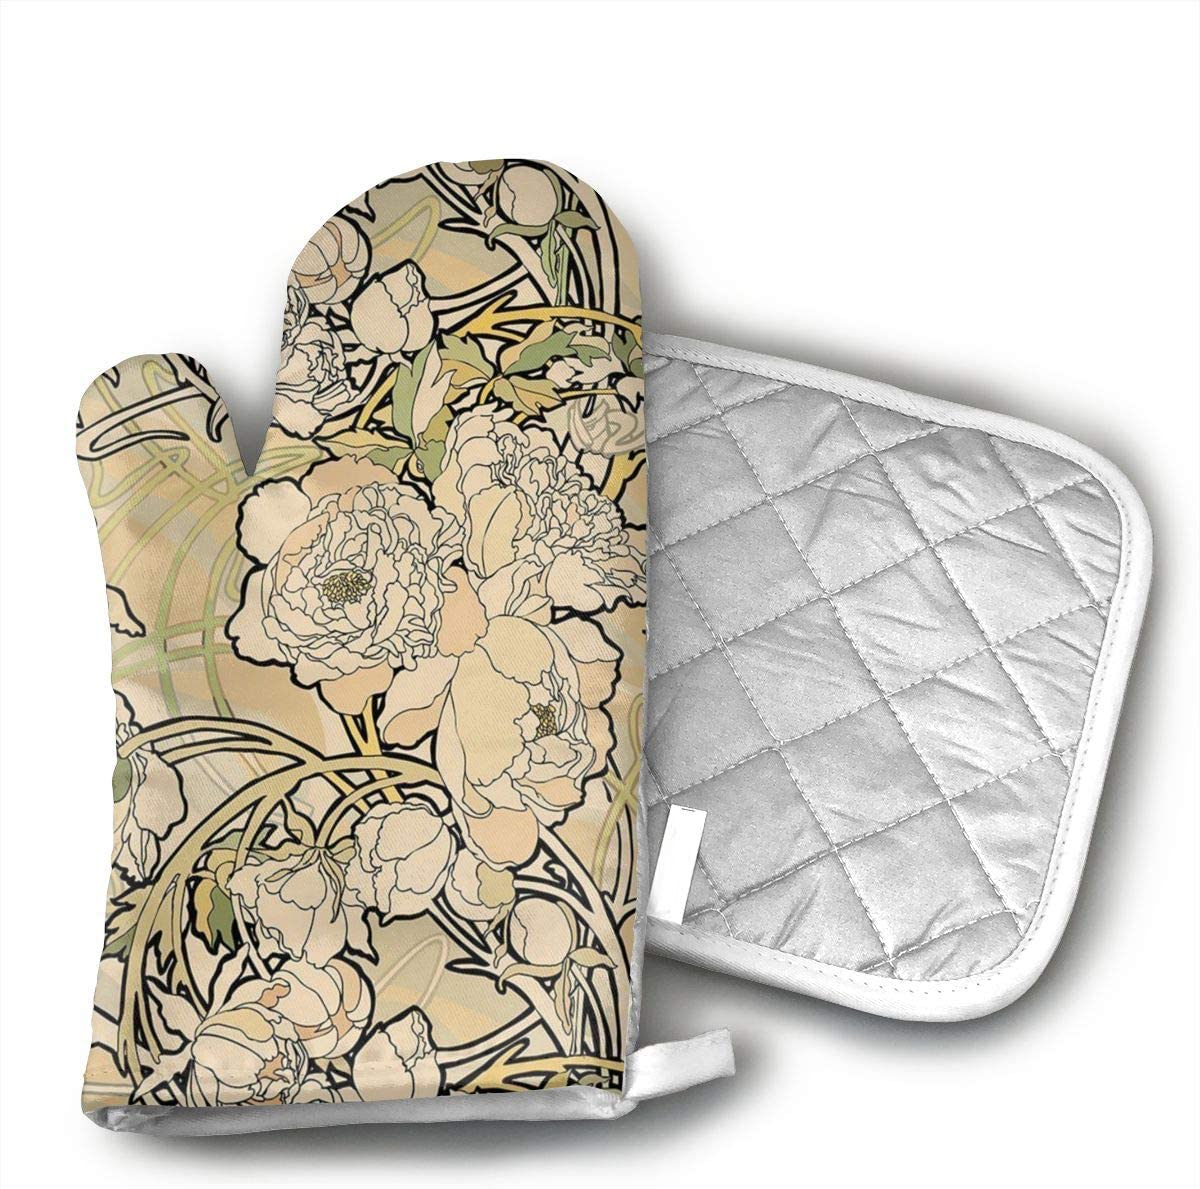 Kitchen Gloves for Grilling Machine Baking Grilling with Non-Slip Heat Resistant Mitts for Finger Hand Wrist Protection with Inner Lining Alphonse Mucha Oven Mitts and BBQ Gloves Pot Holders